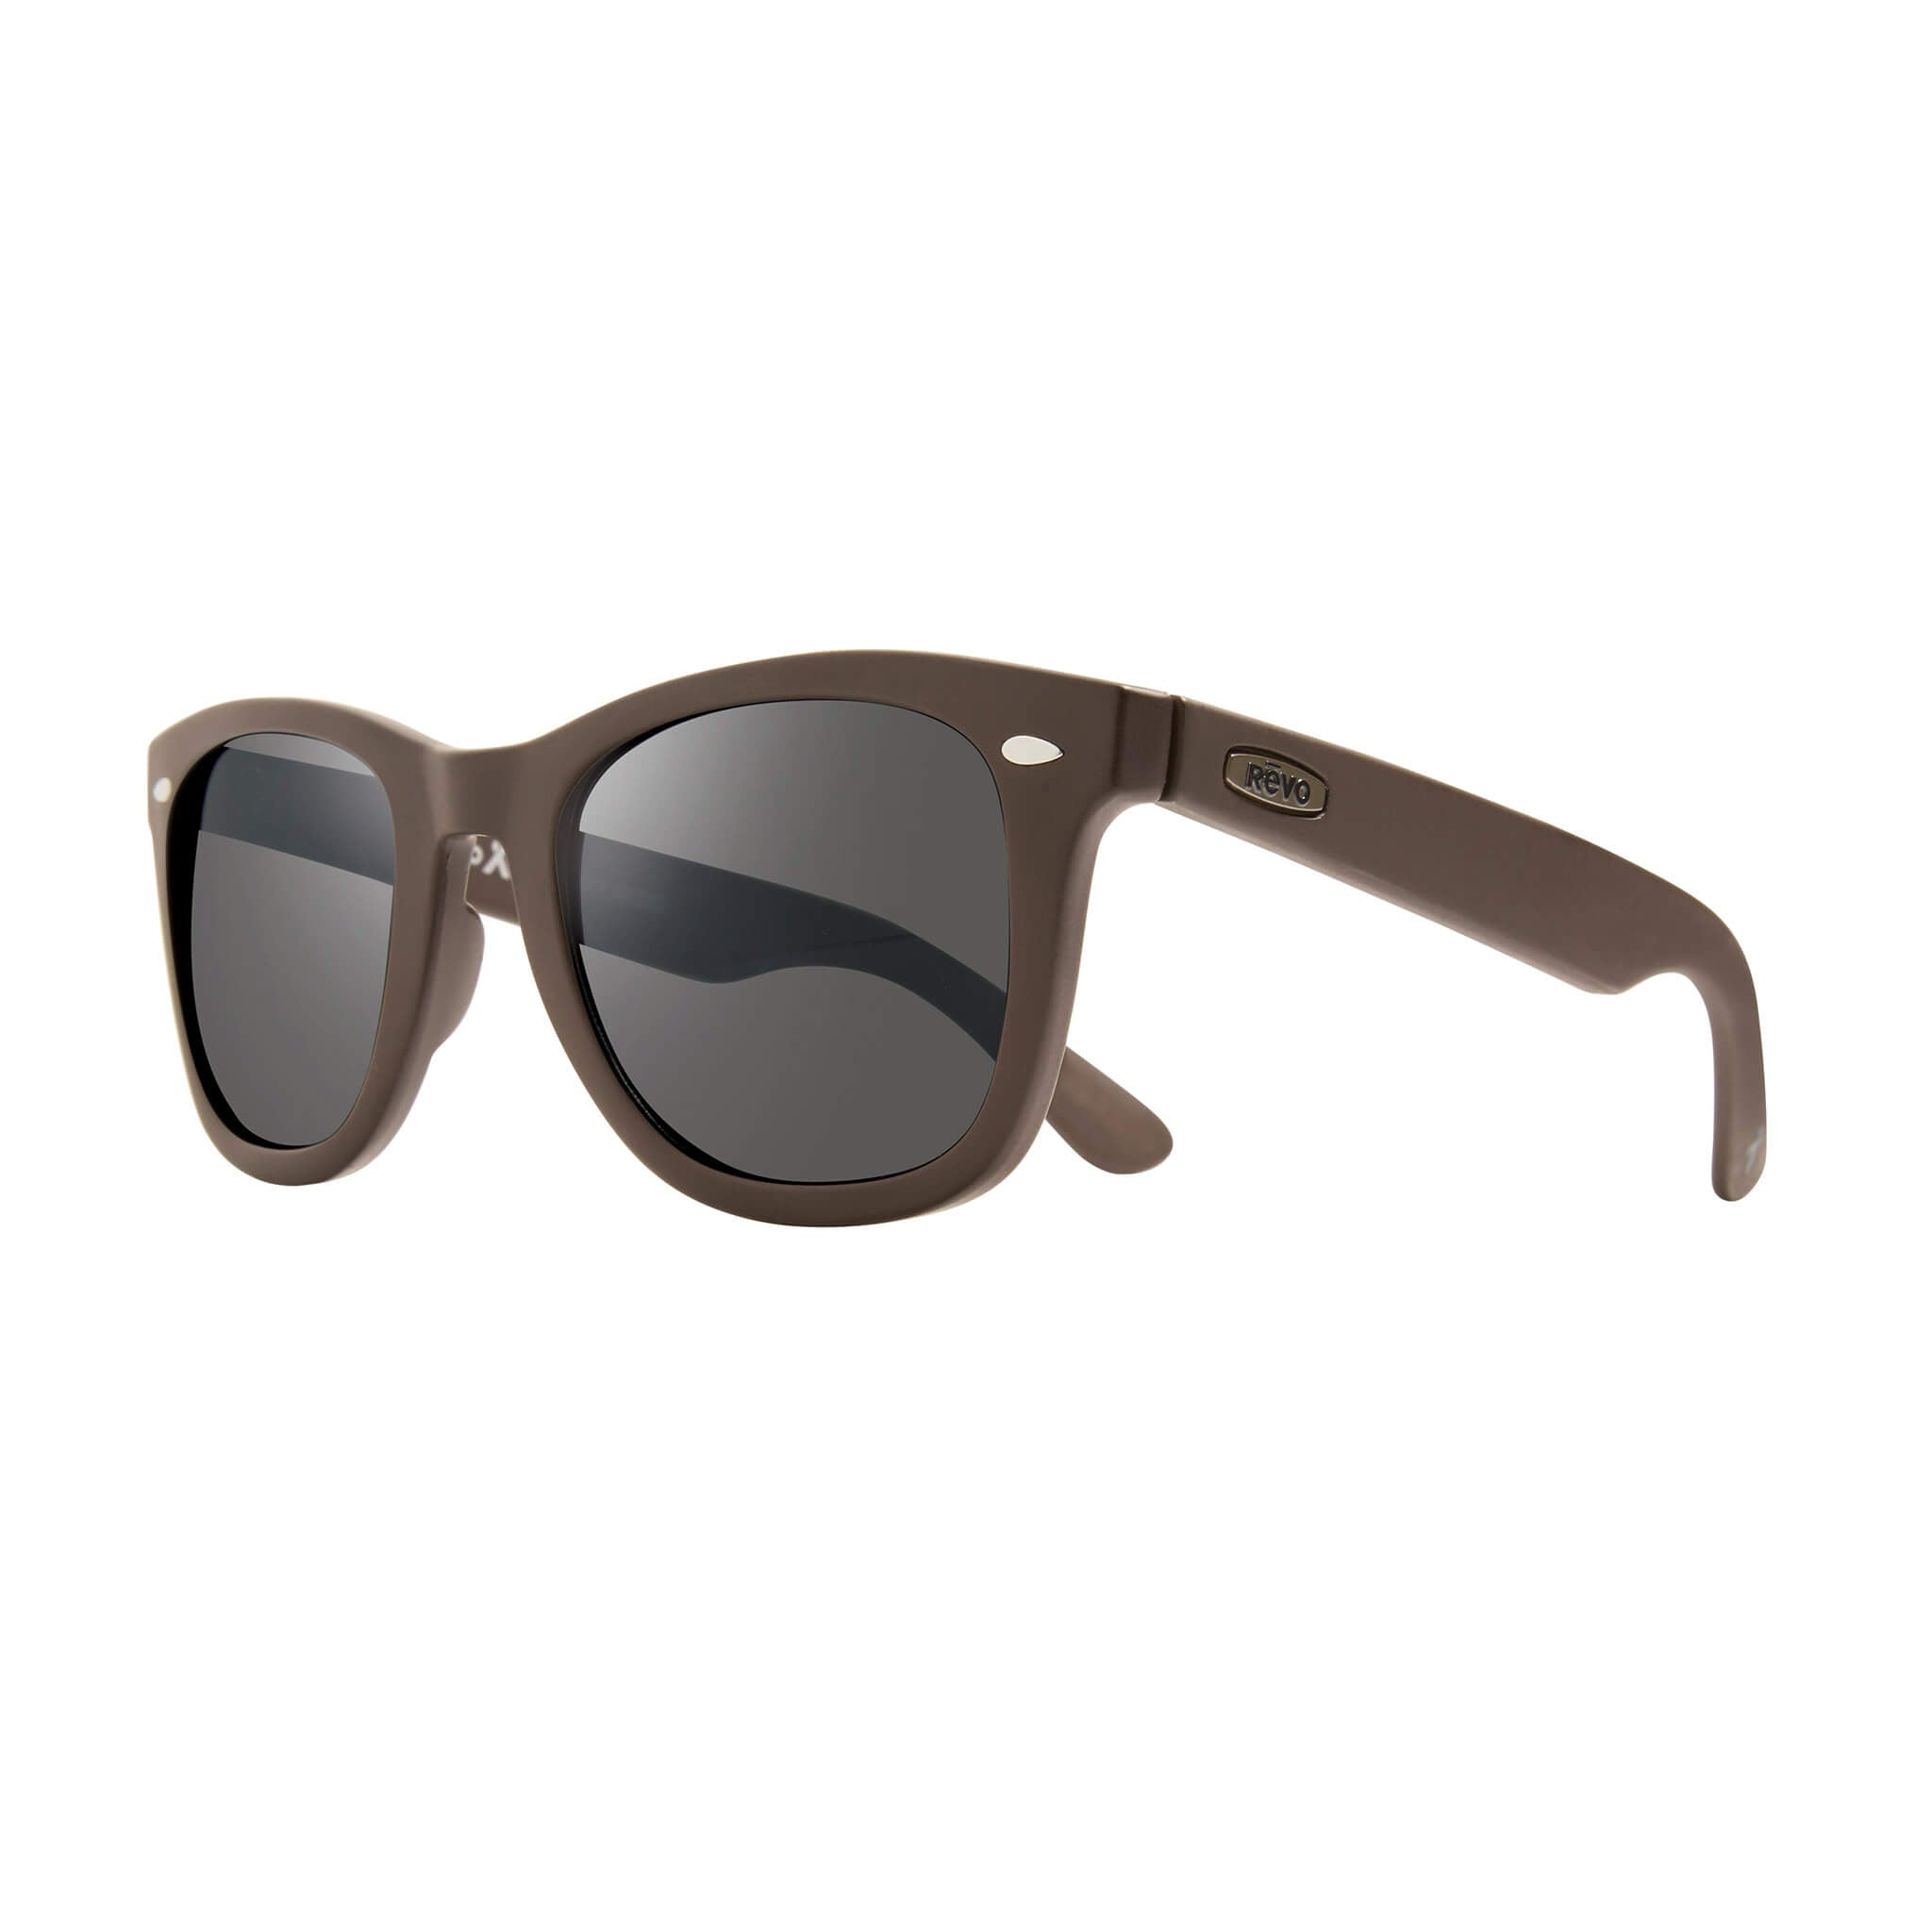 Forge Matte brown + graphite lens:Side view of Bear Grylls Revo Brown with Graphite lens sunglasses